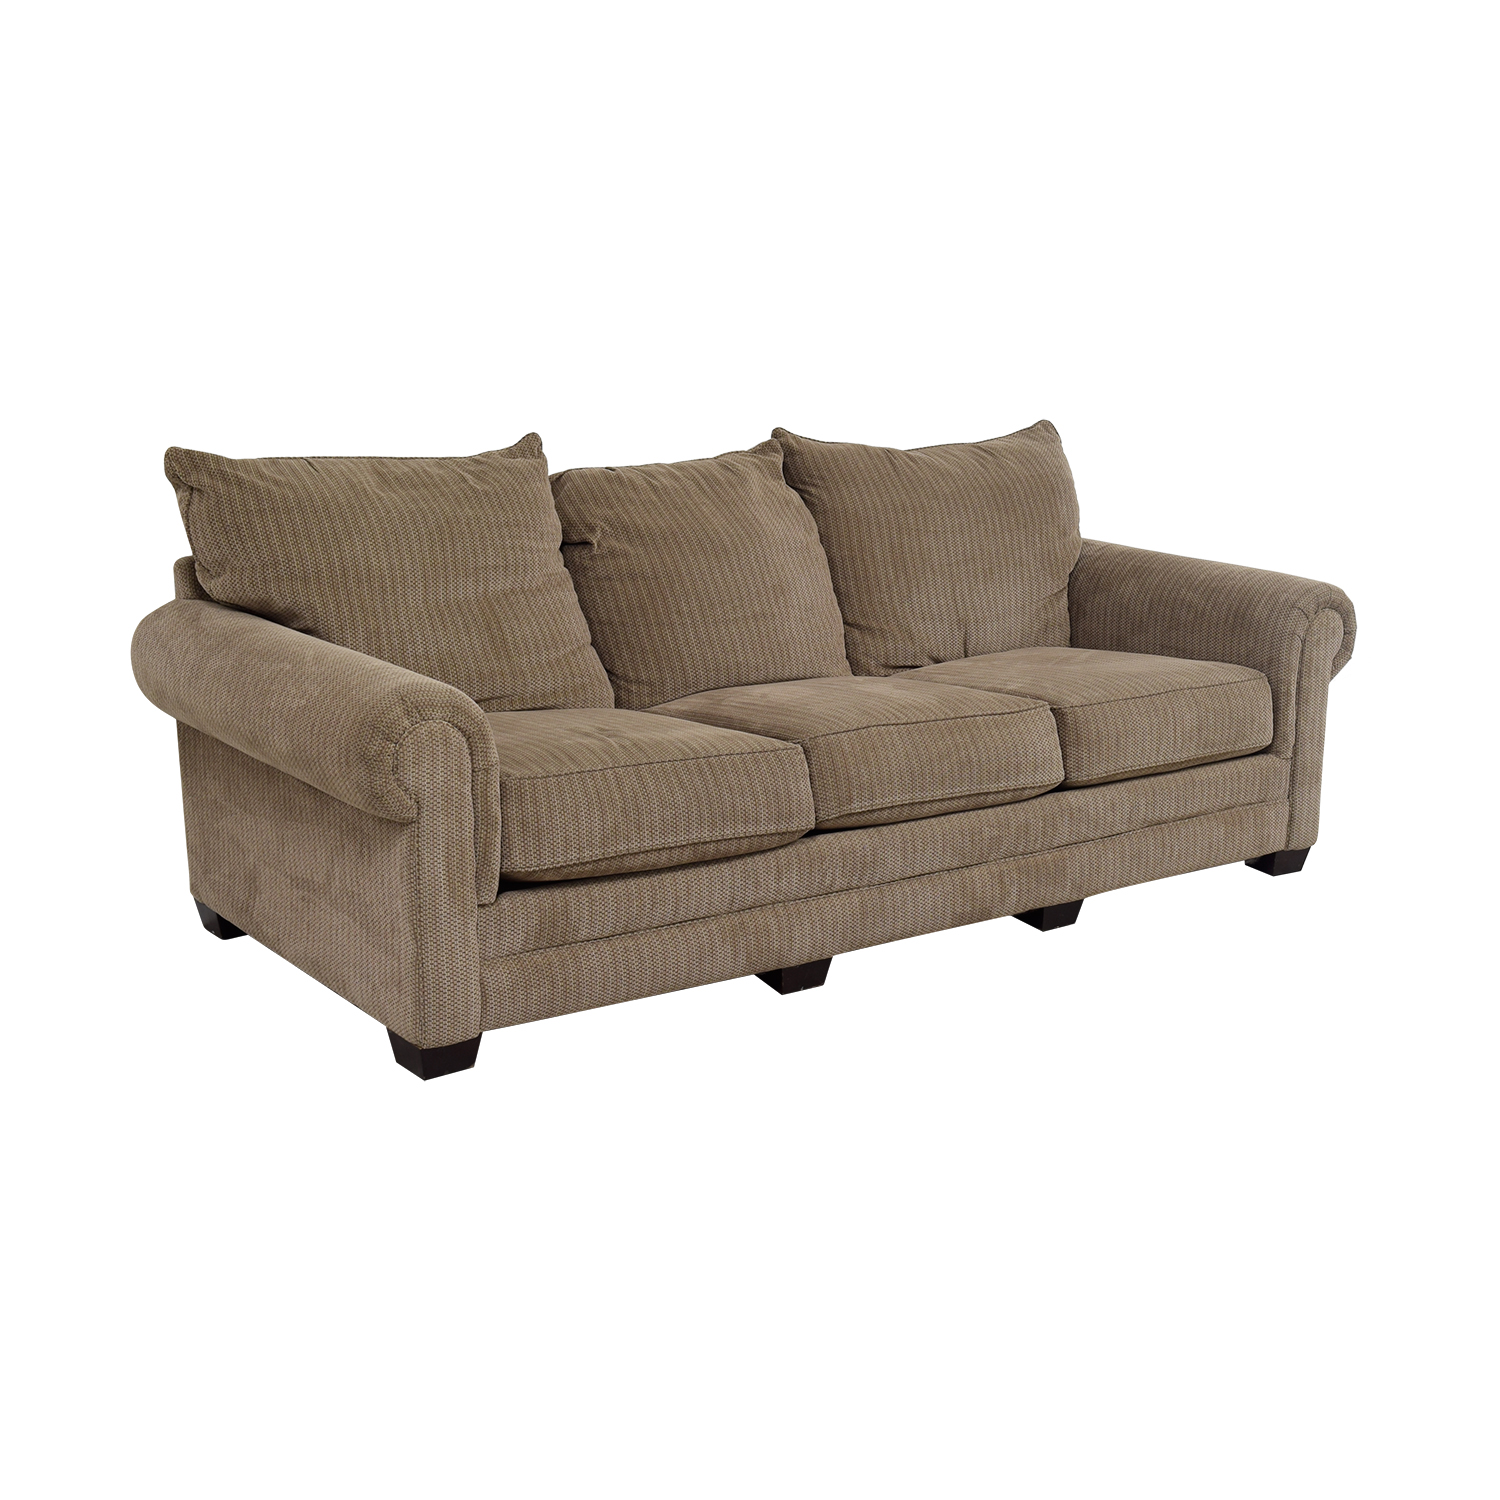 Tan Three-Cushion Couch